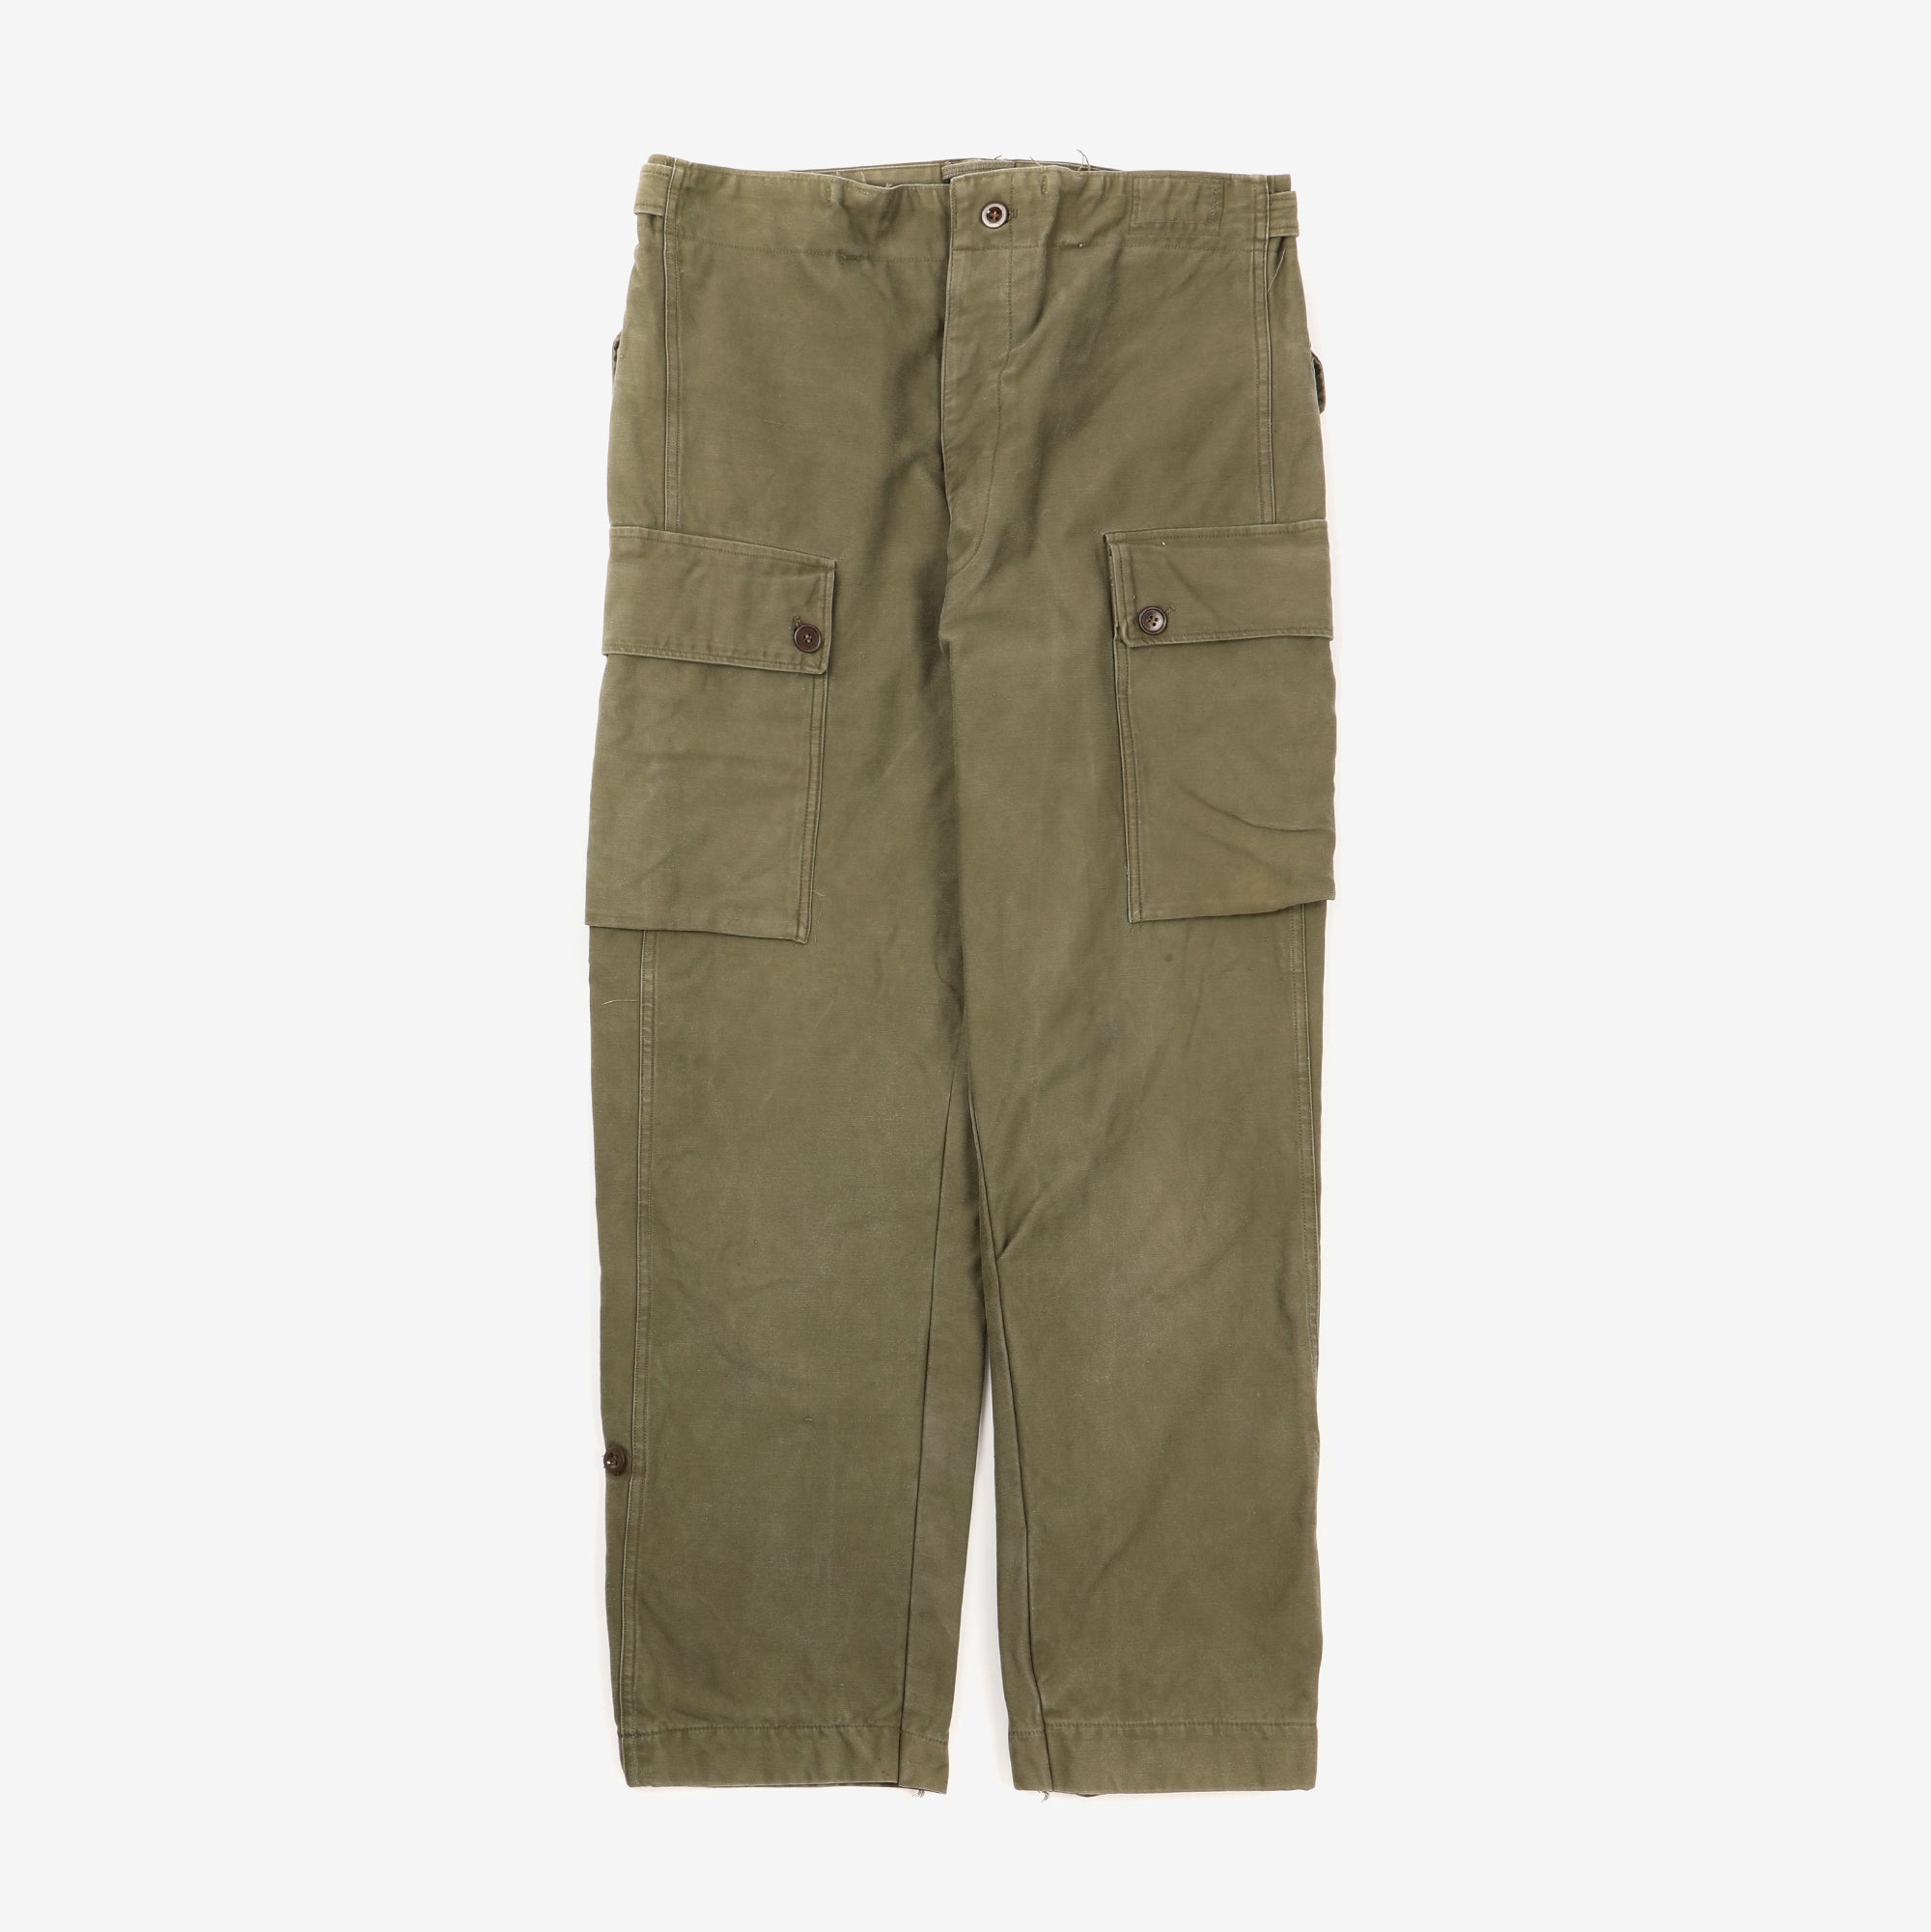 Olive Drab Military Fatigue Pants